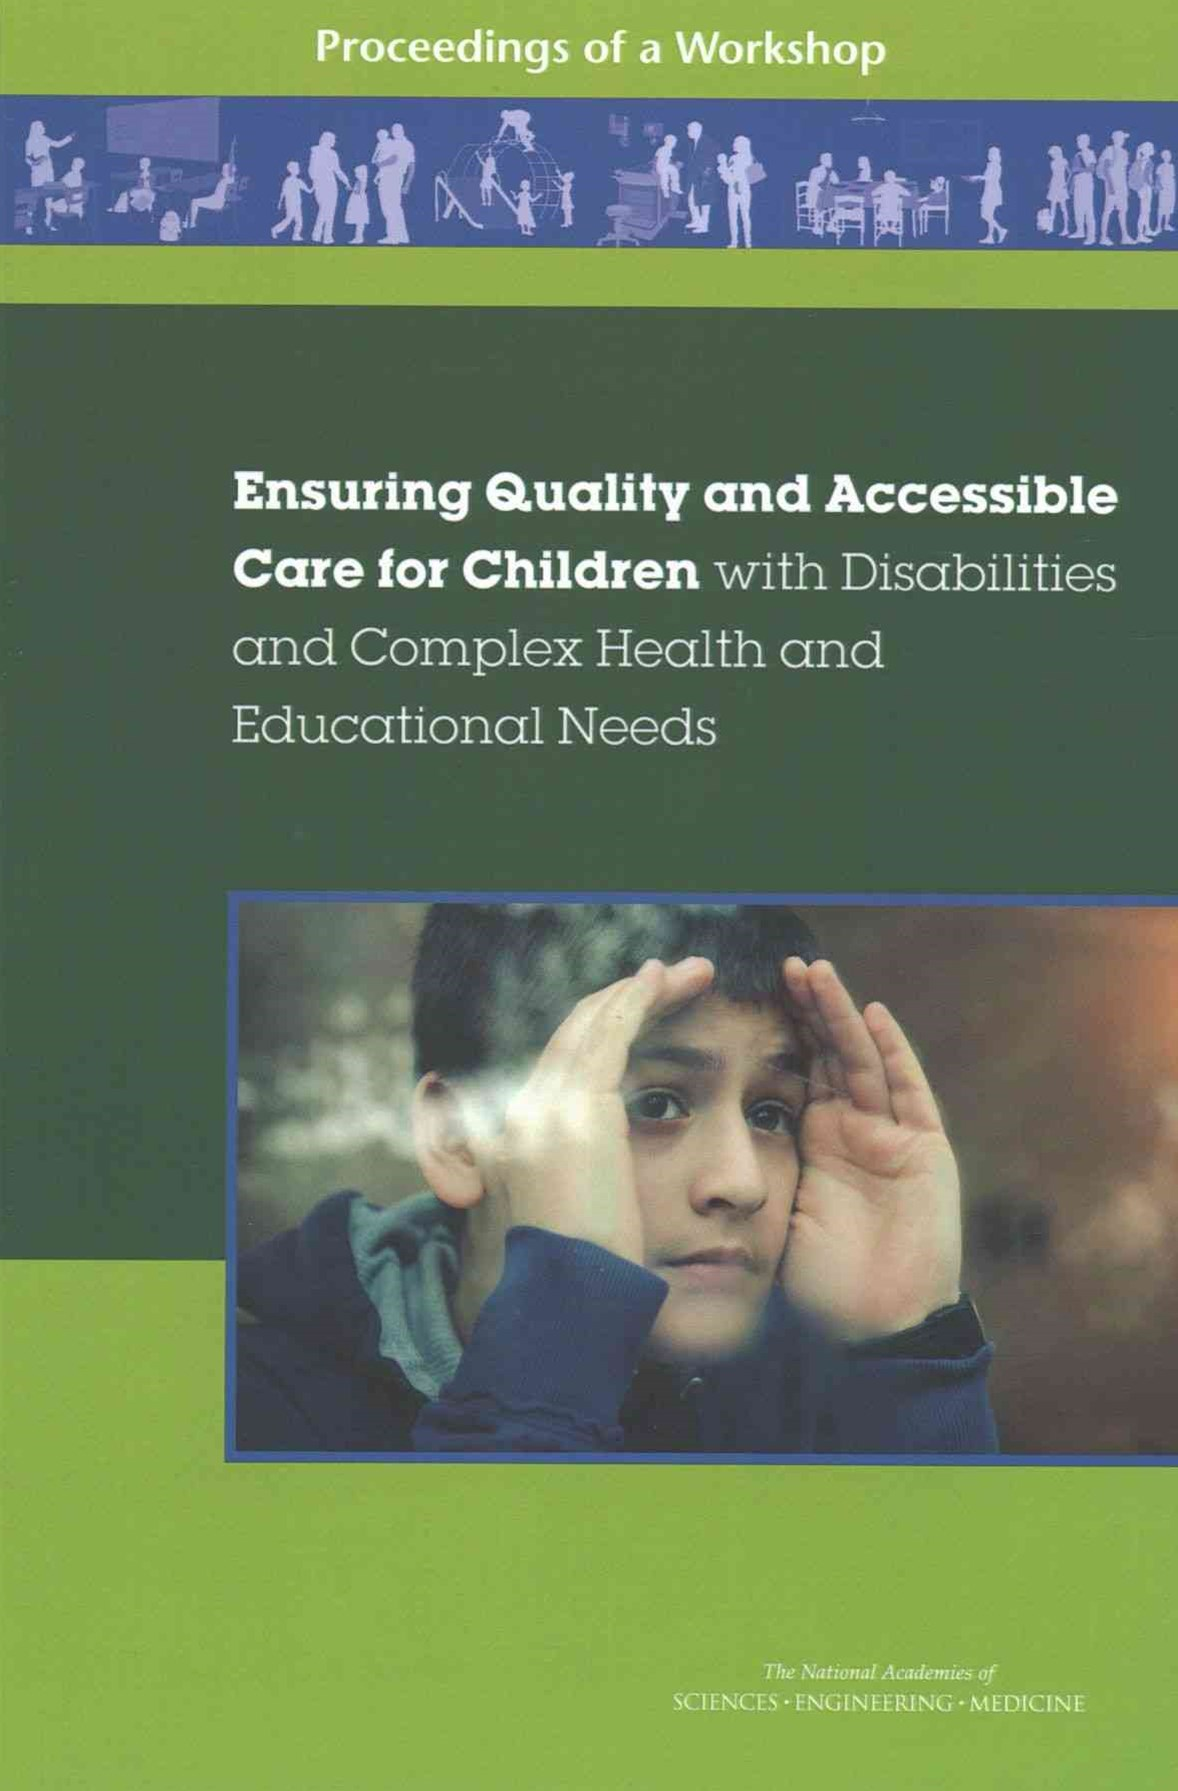 Ensuring Quality and Accessible Care for Children with Disabilities and Complex Health and Educational Needs